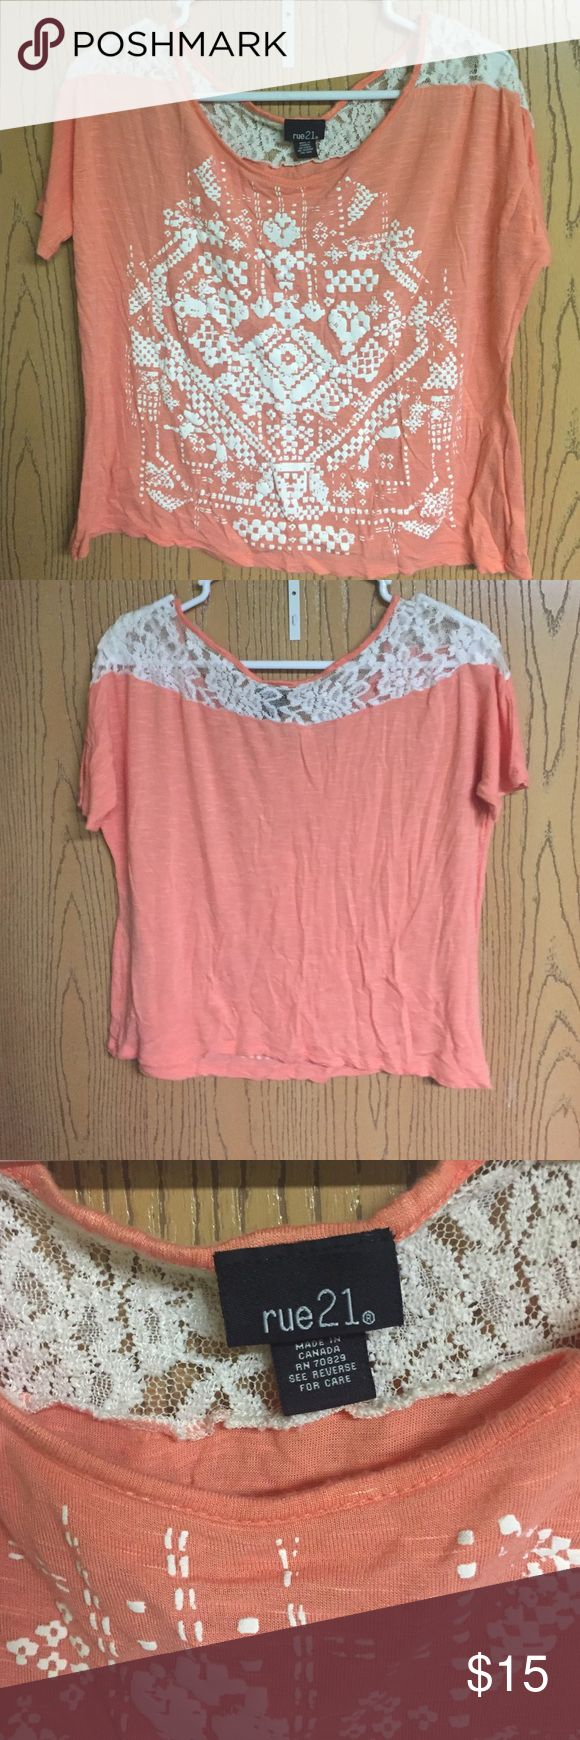 Rue 21 orange Aztec tee Orange tee with white Aztec design on the front. Lace across the top from sleeve to sleeve Rue 21 Tops Tees - Short Sleeve